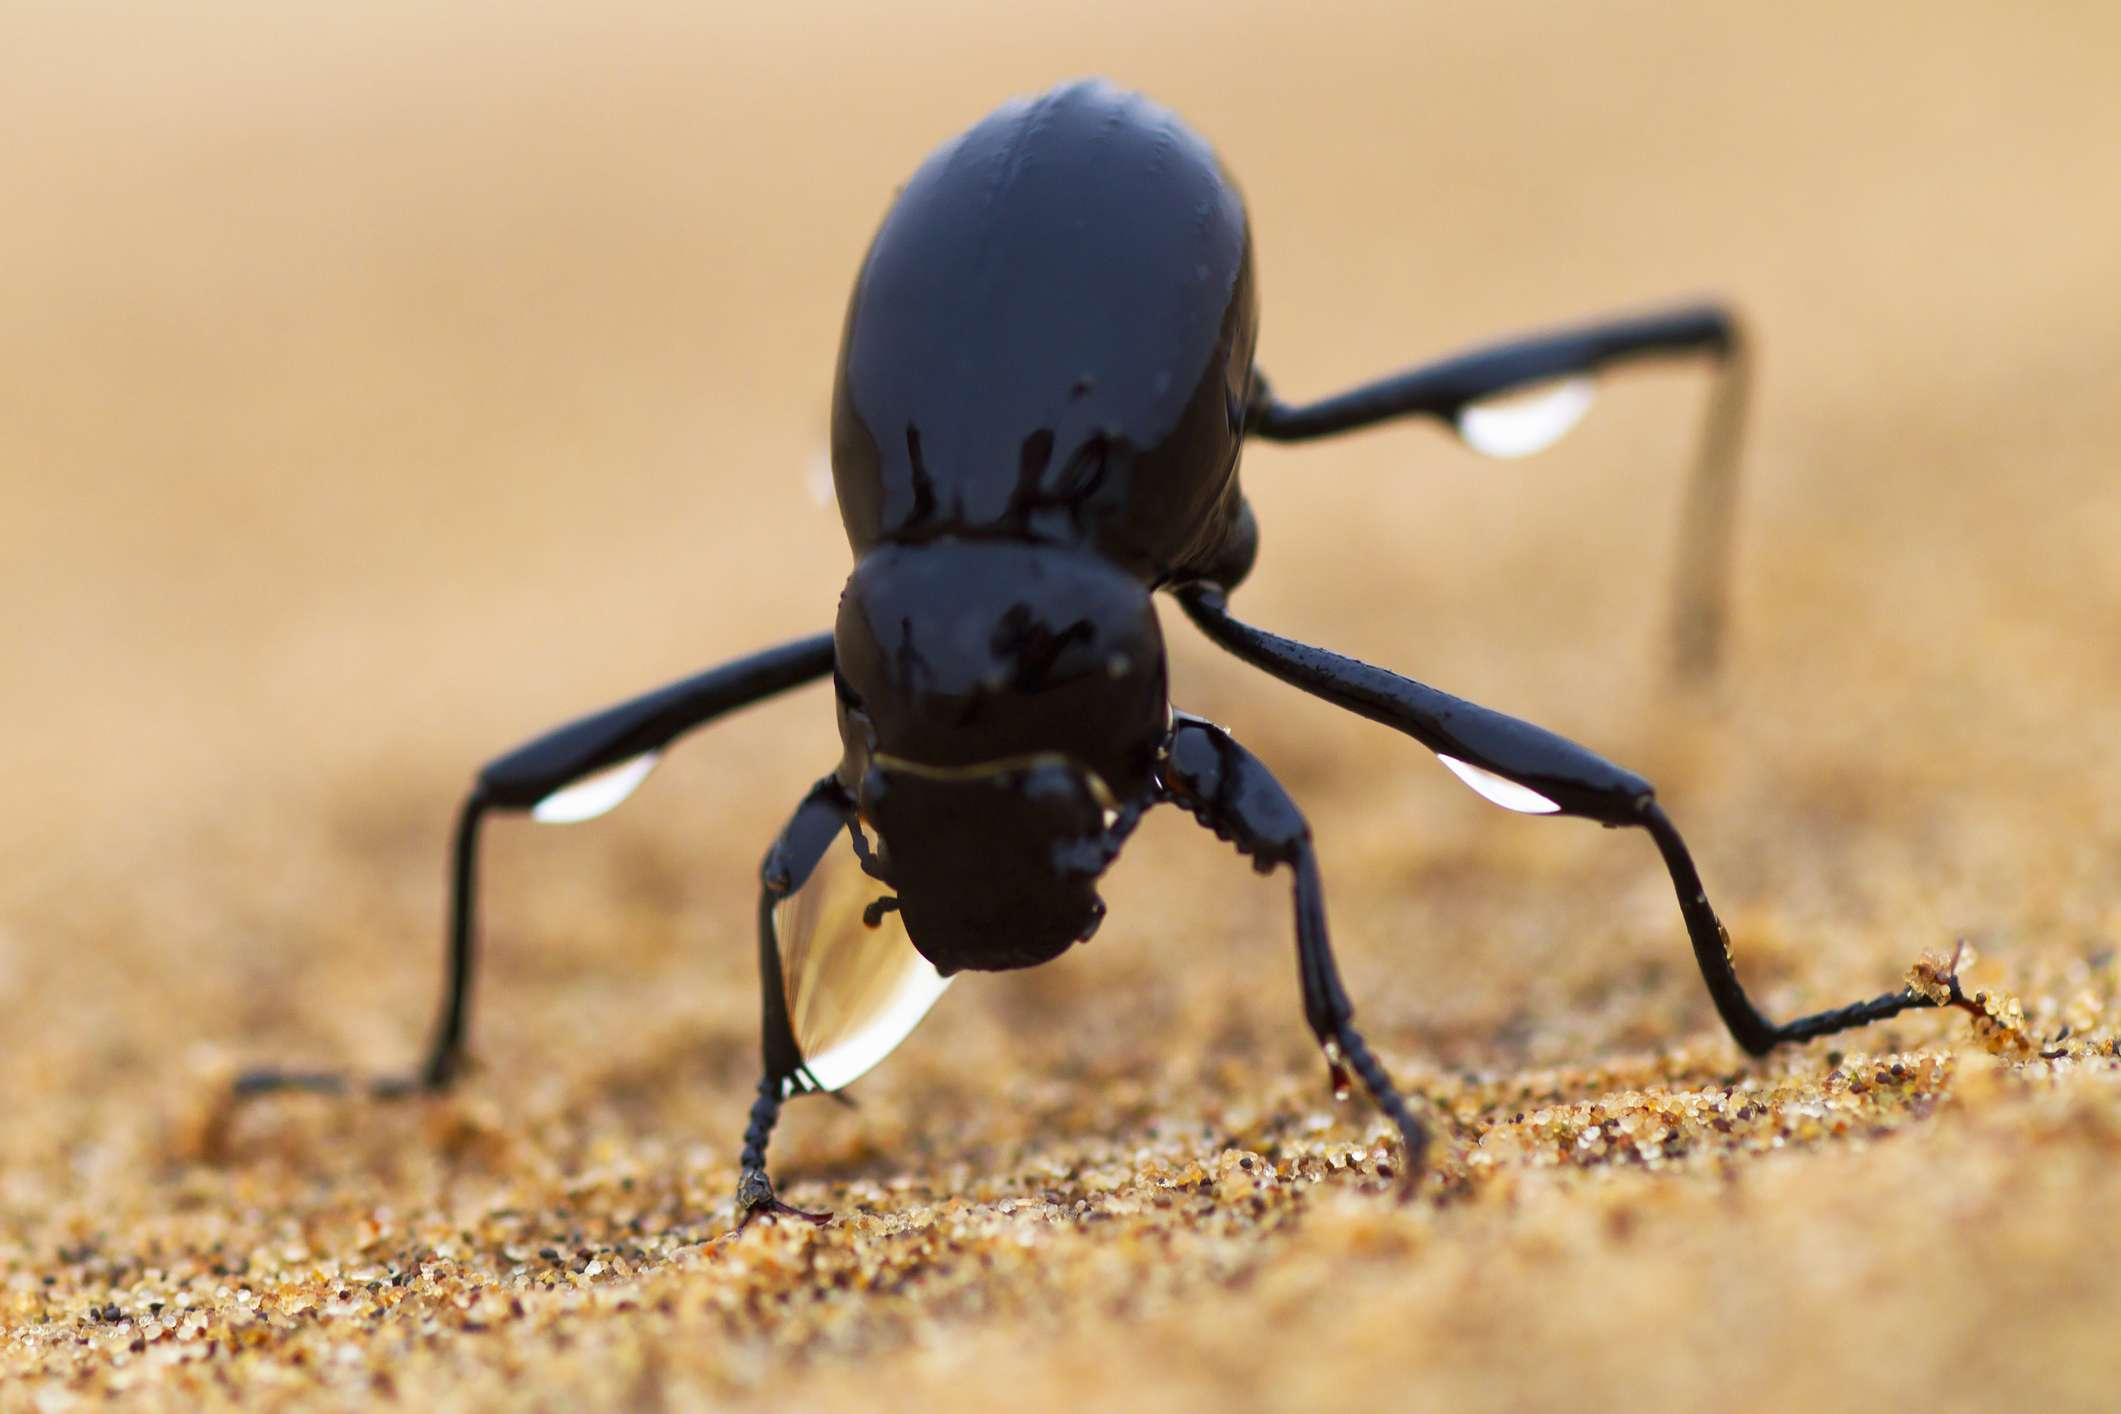 Namib desert beetle with water droplets on its legs